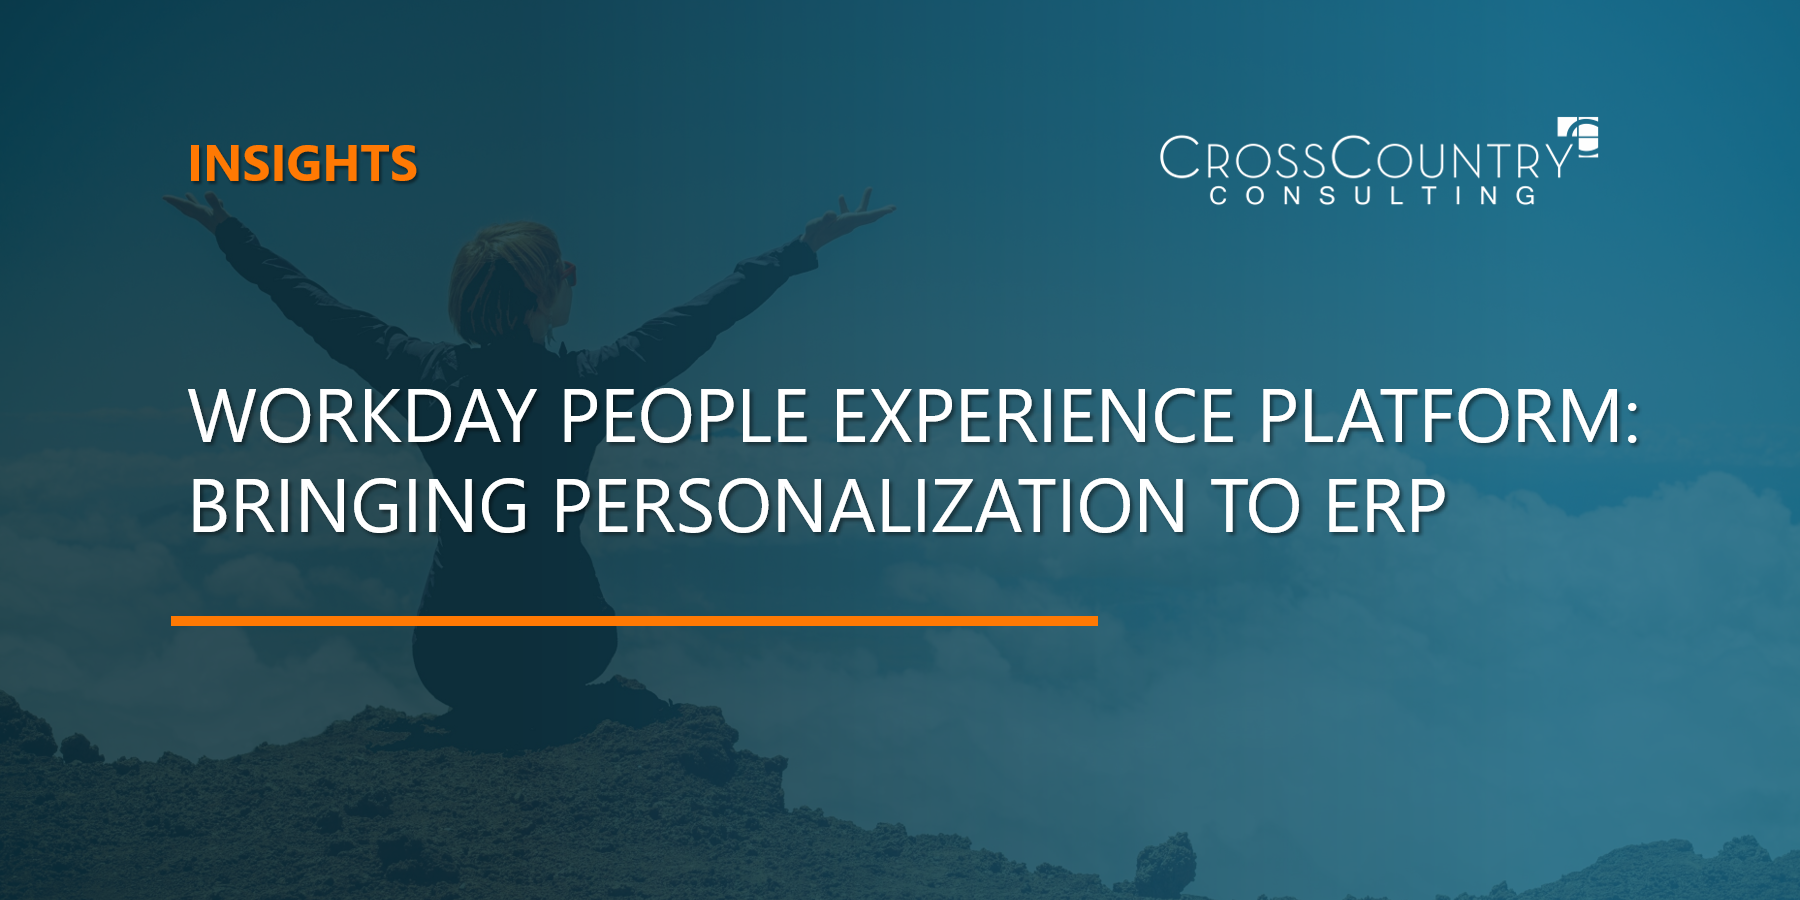 Workday People Experience Platform: Bringing Personalization to ERP